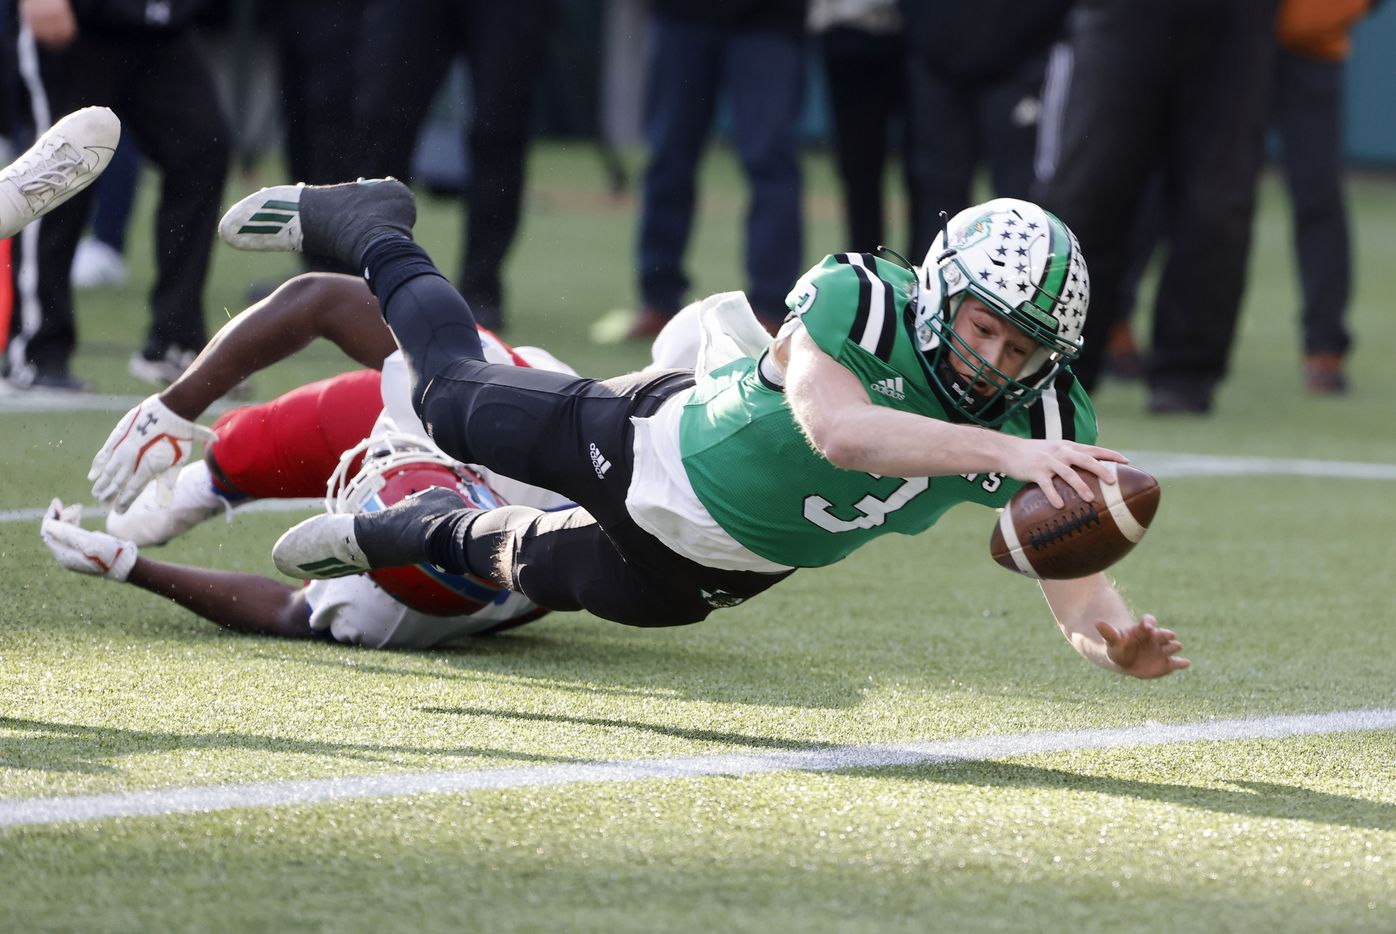 Southlake Carroll quarterback Quinn Ewers (3) dives for a touchdown against Duncanville during the Class 6A Division I state high school football semifinal in Arlington, Texas on Jan. 9, 2020. (Michael Ainsworth)